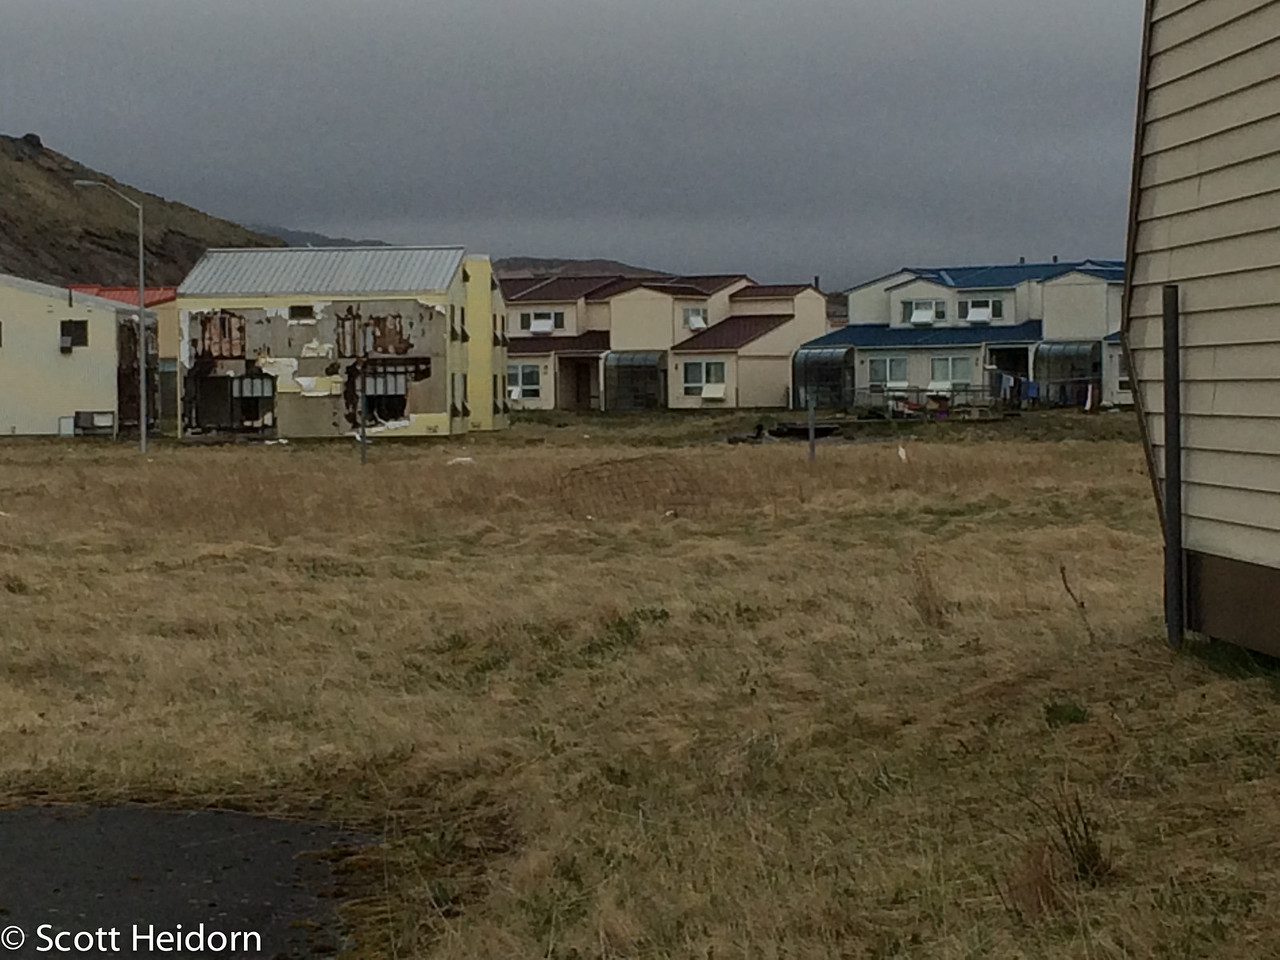 Many of the homes in the back were still occupied